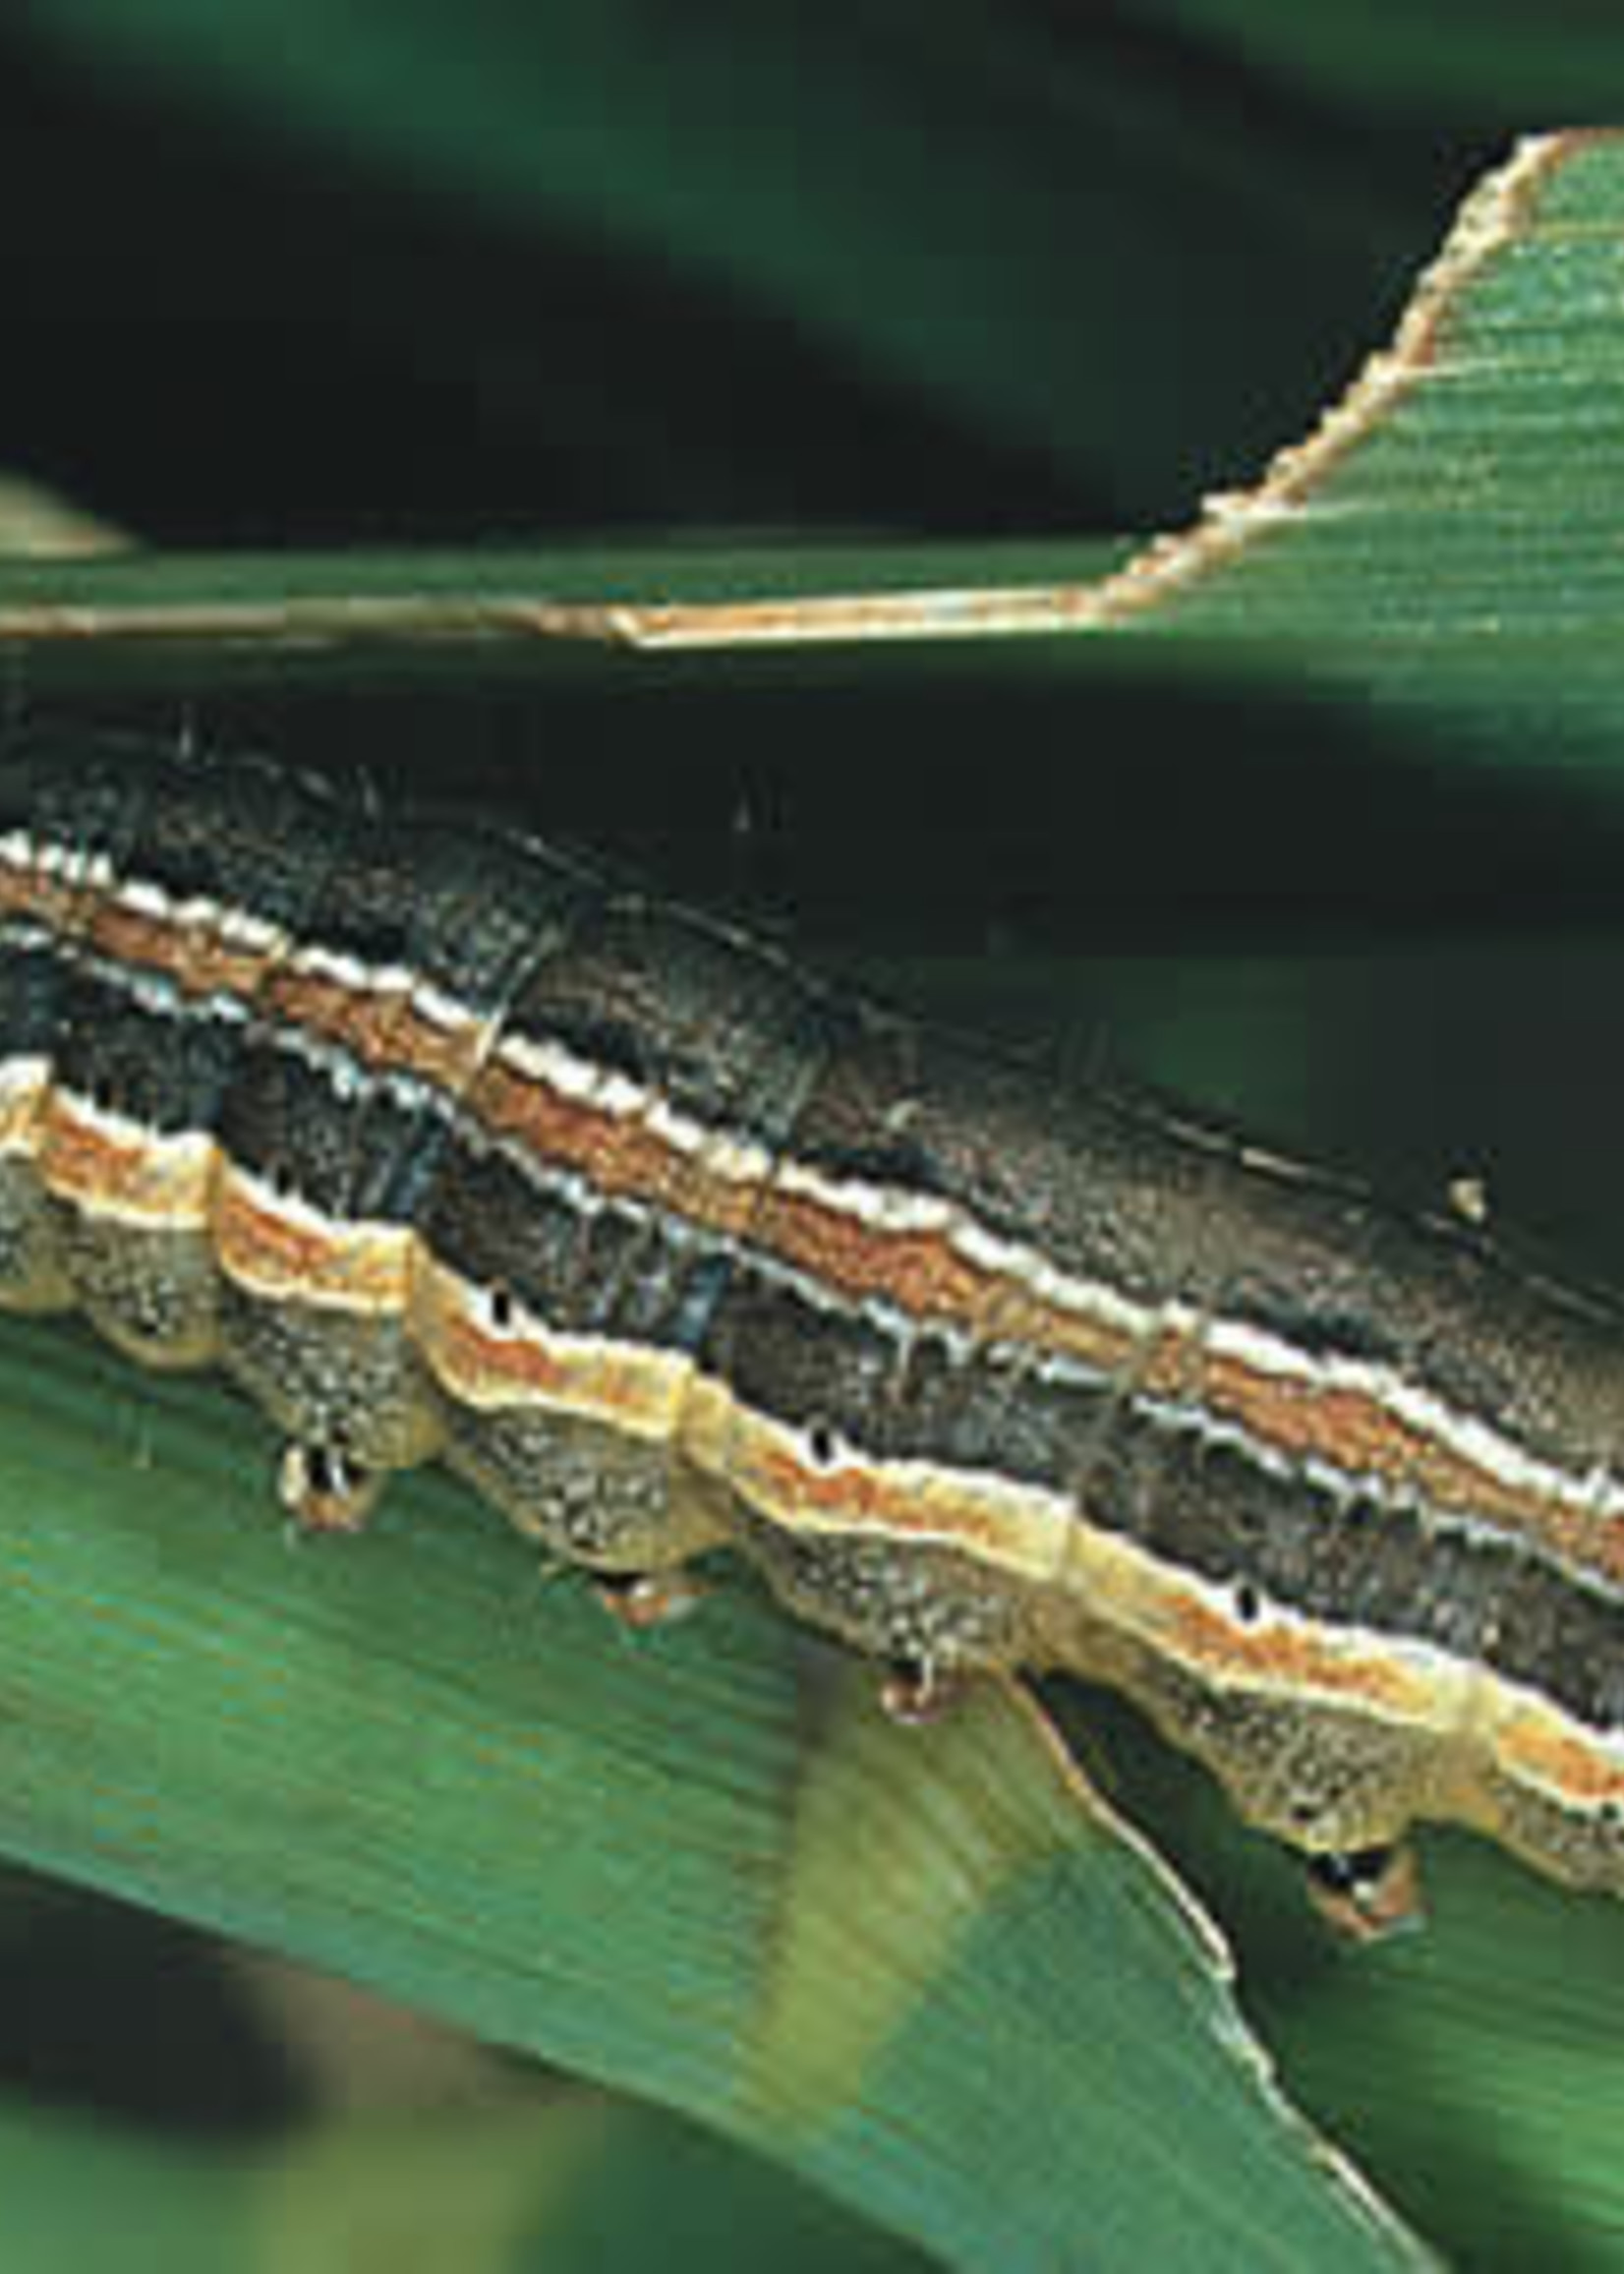 Insect, Lawn, Armyworm